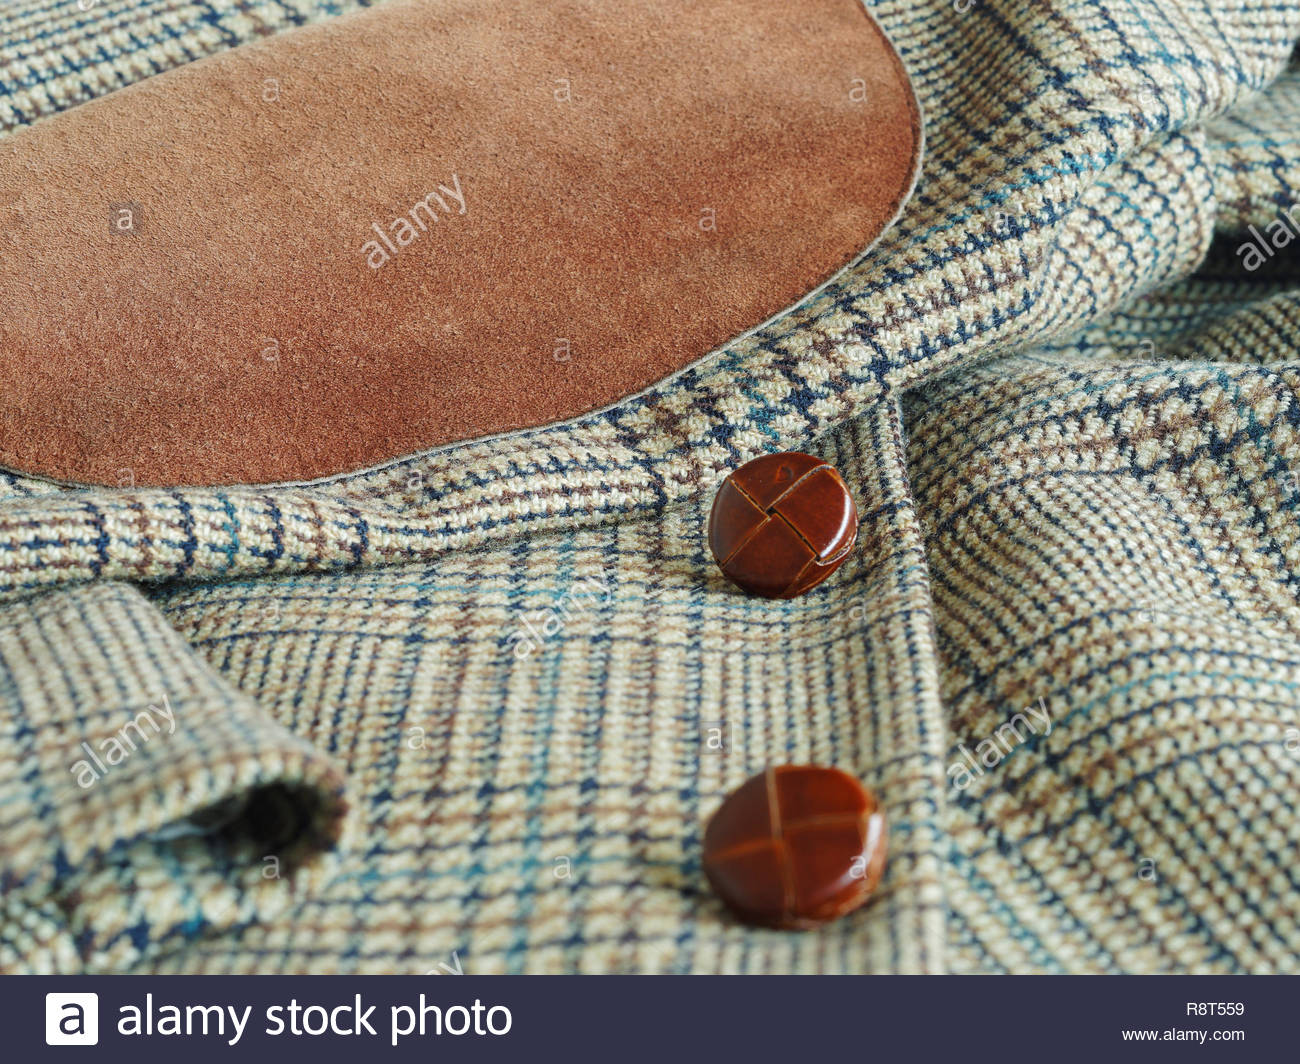 Close Up Of Men S Tweed Fabric Jacket With Leather Elbow Patches And